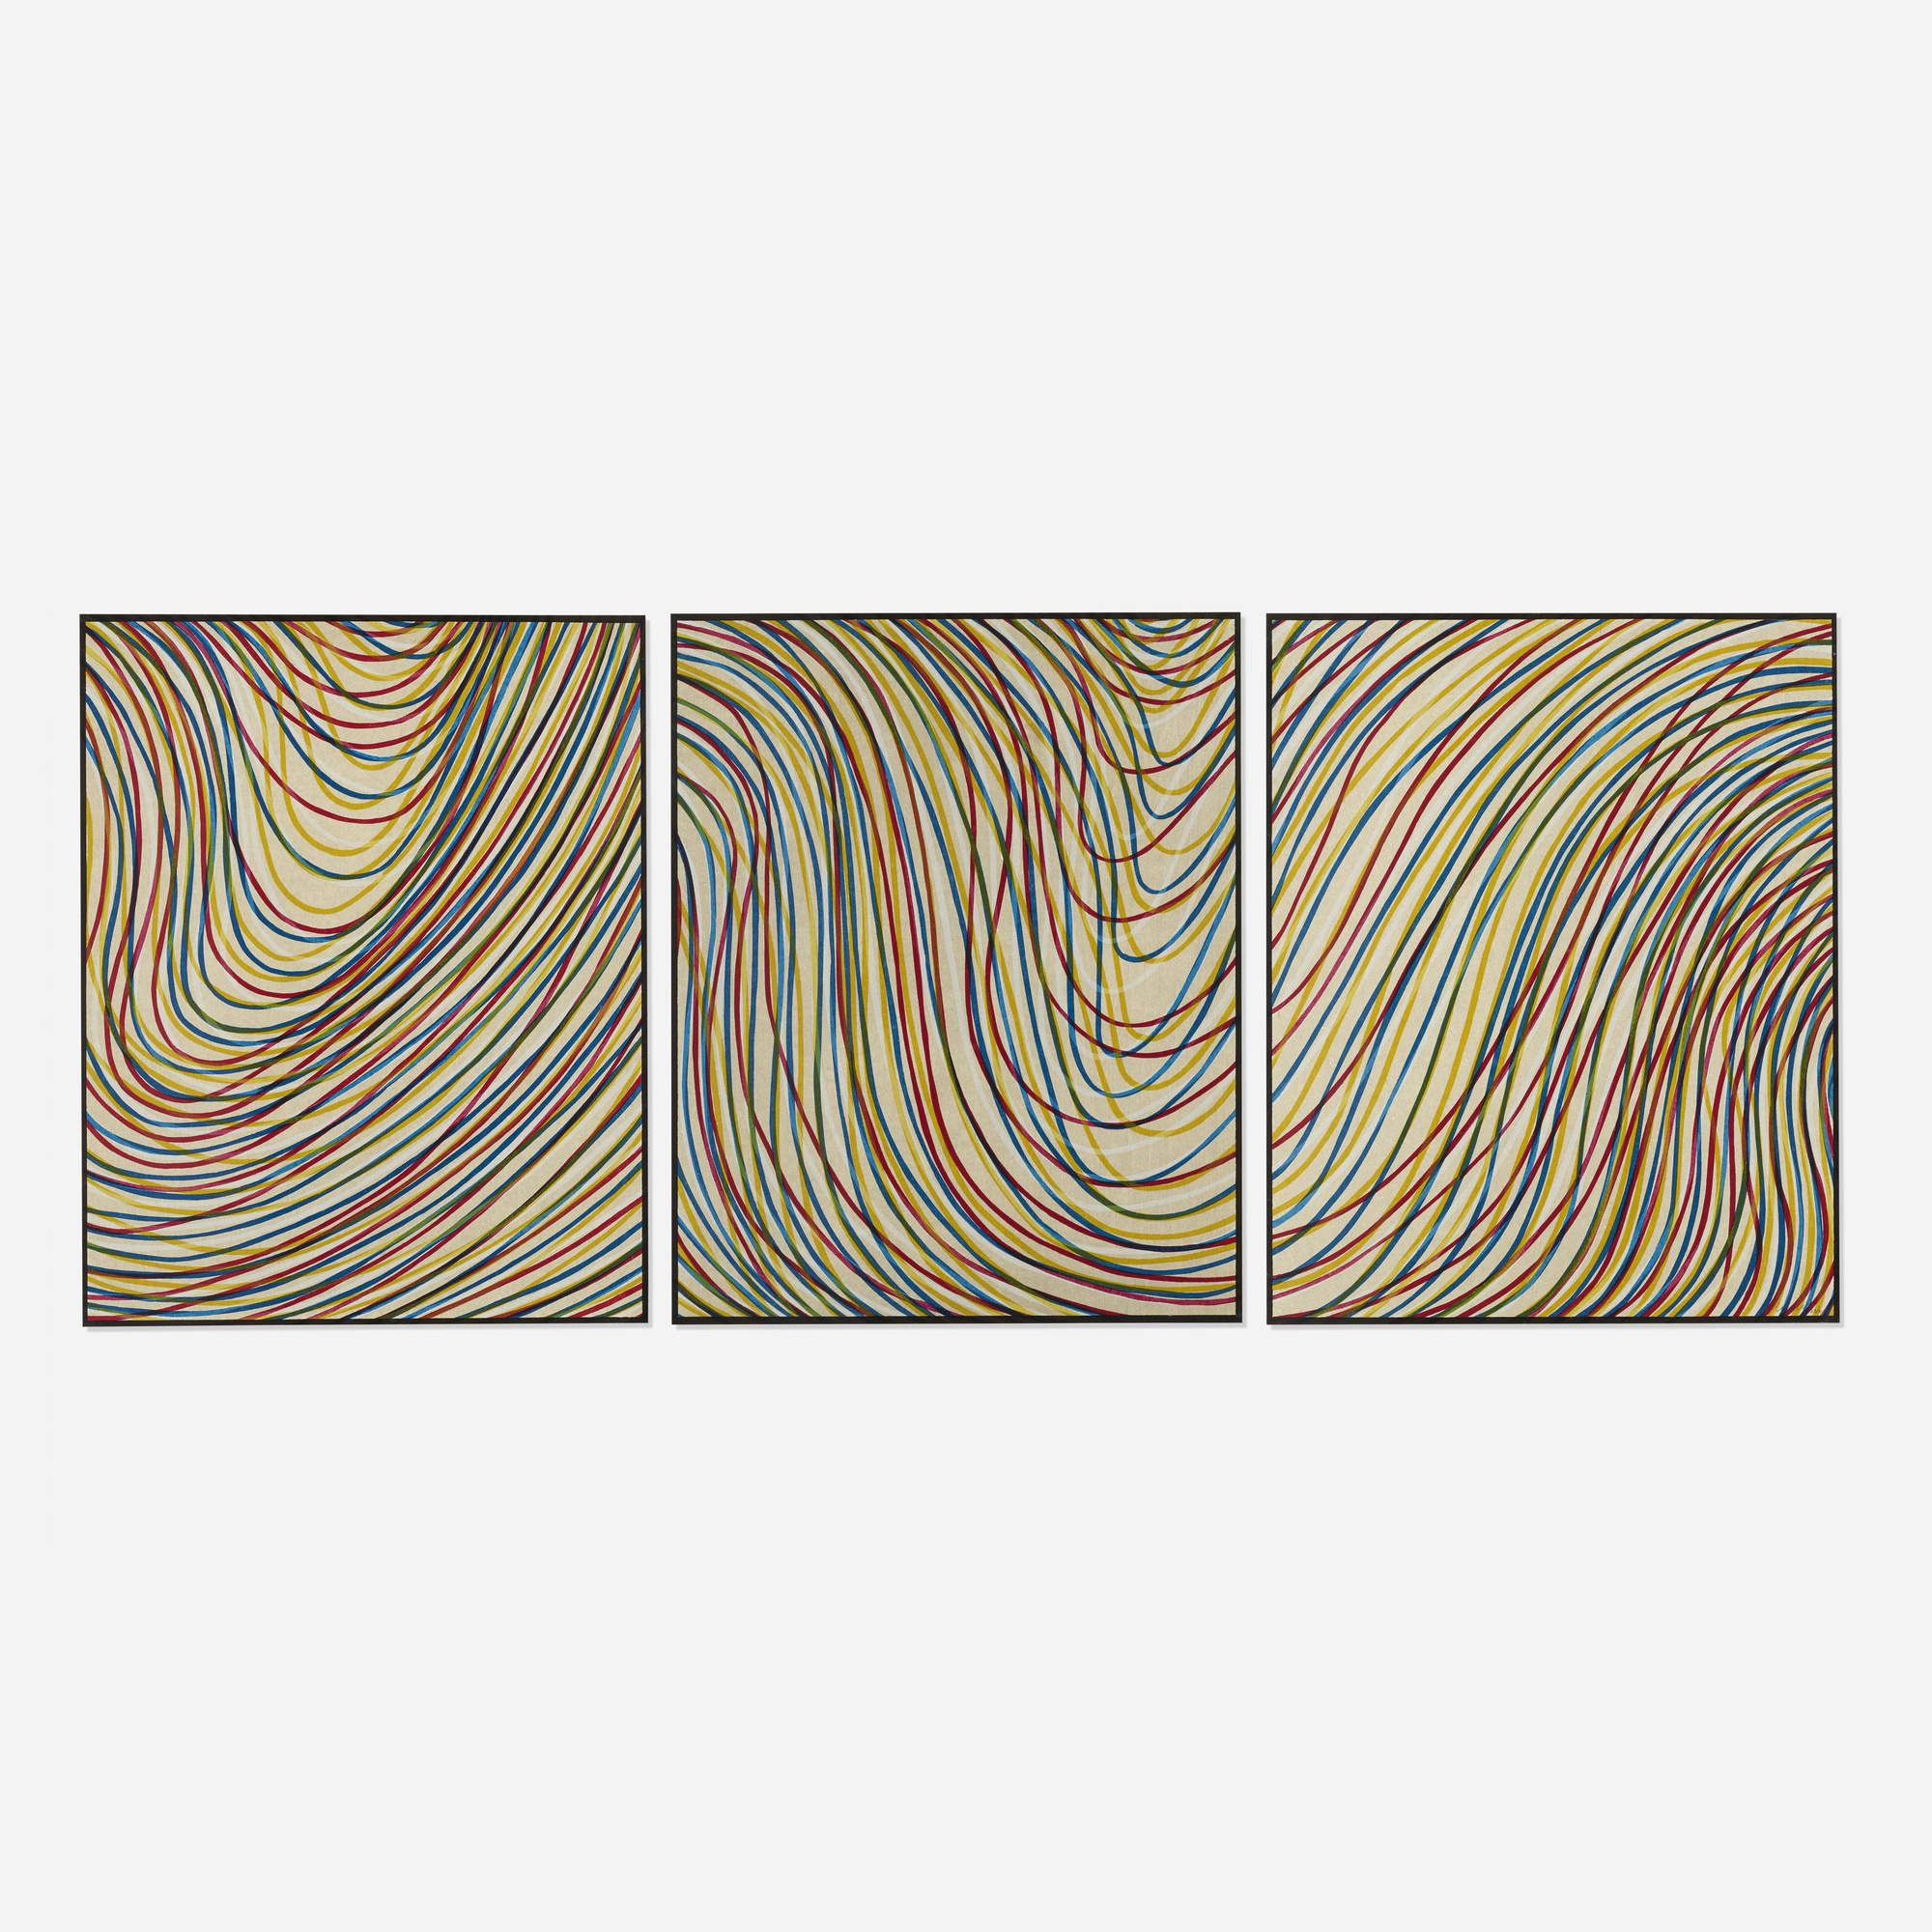 110: Sol LeWitt / Wavy Lines on Gray (triptych) (1 of 1)